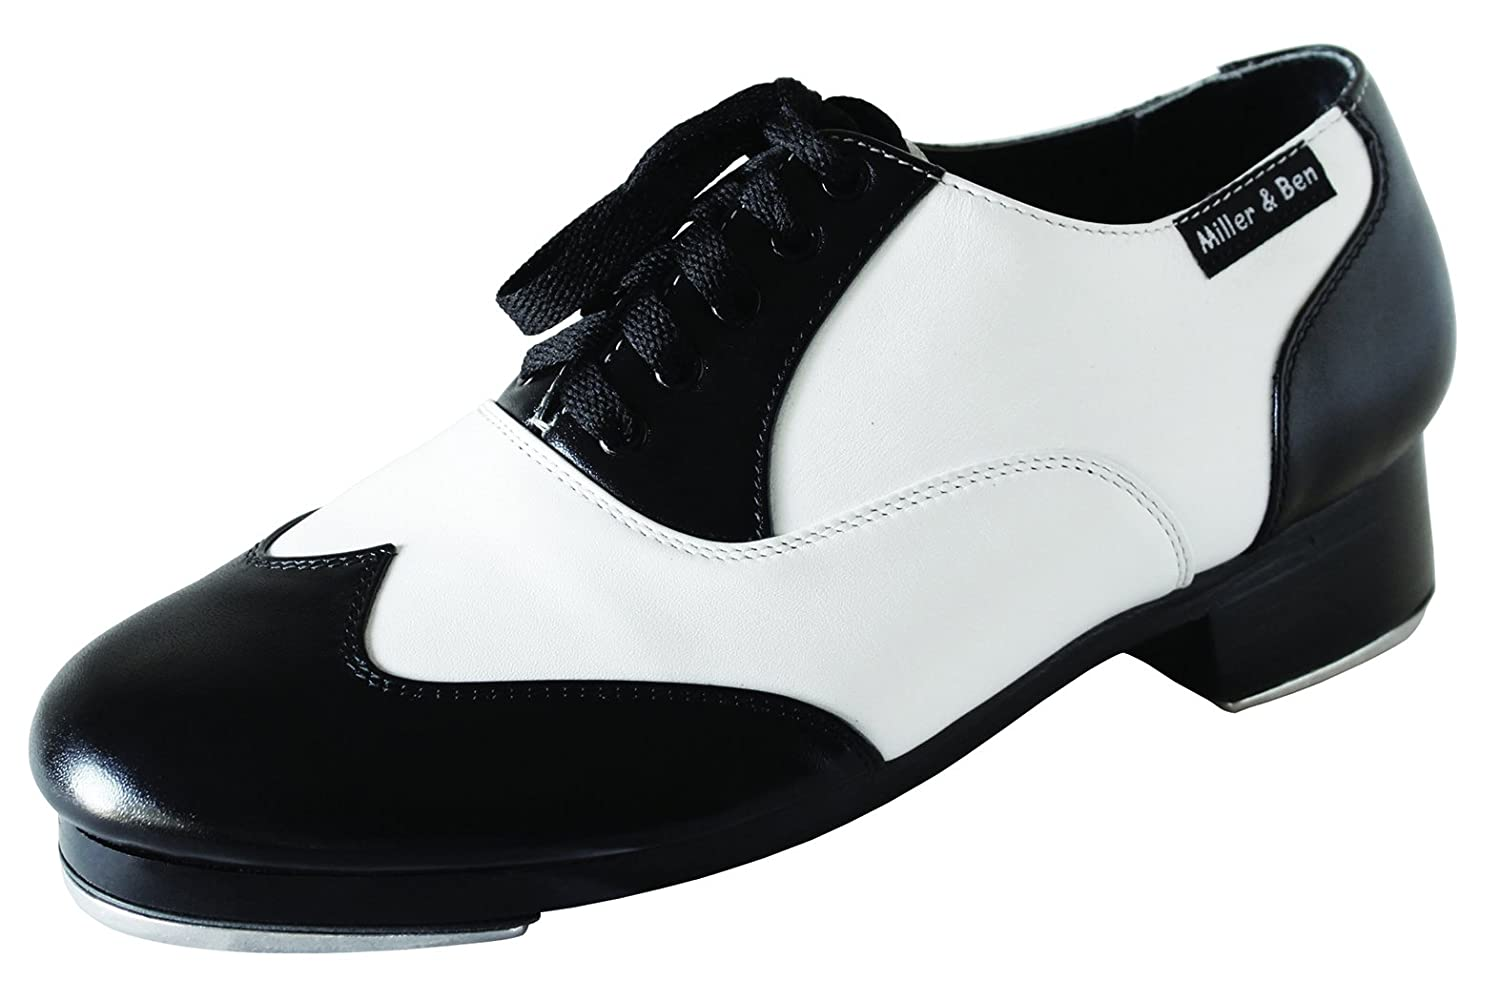 1920s Style Shoes Miller & Ben Tap Shoes Jazz-Tap Master Black & White - STANDARD SIZES $285.00 AT vintagedancer.com